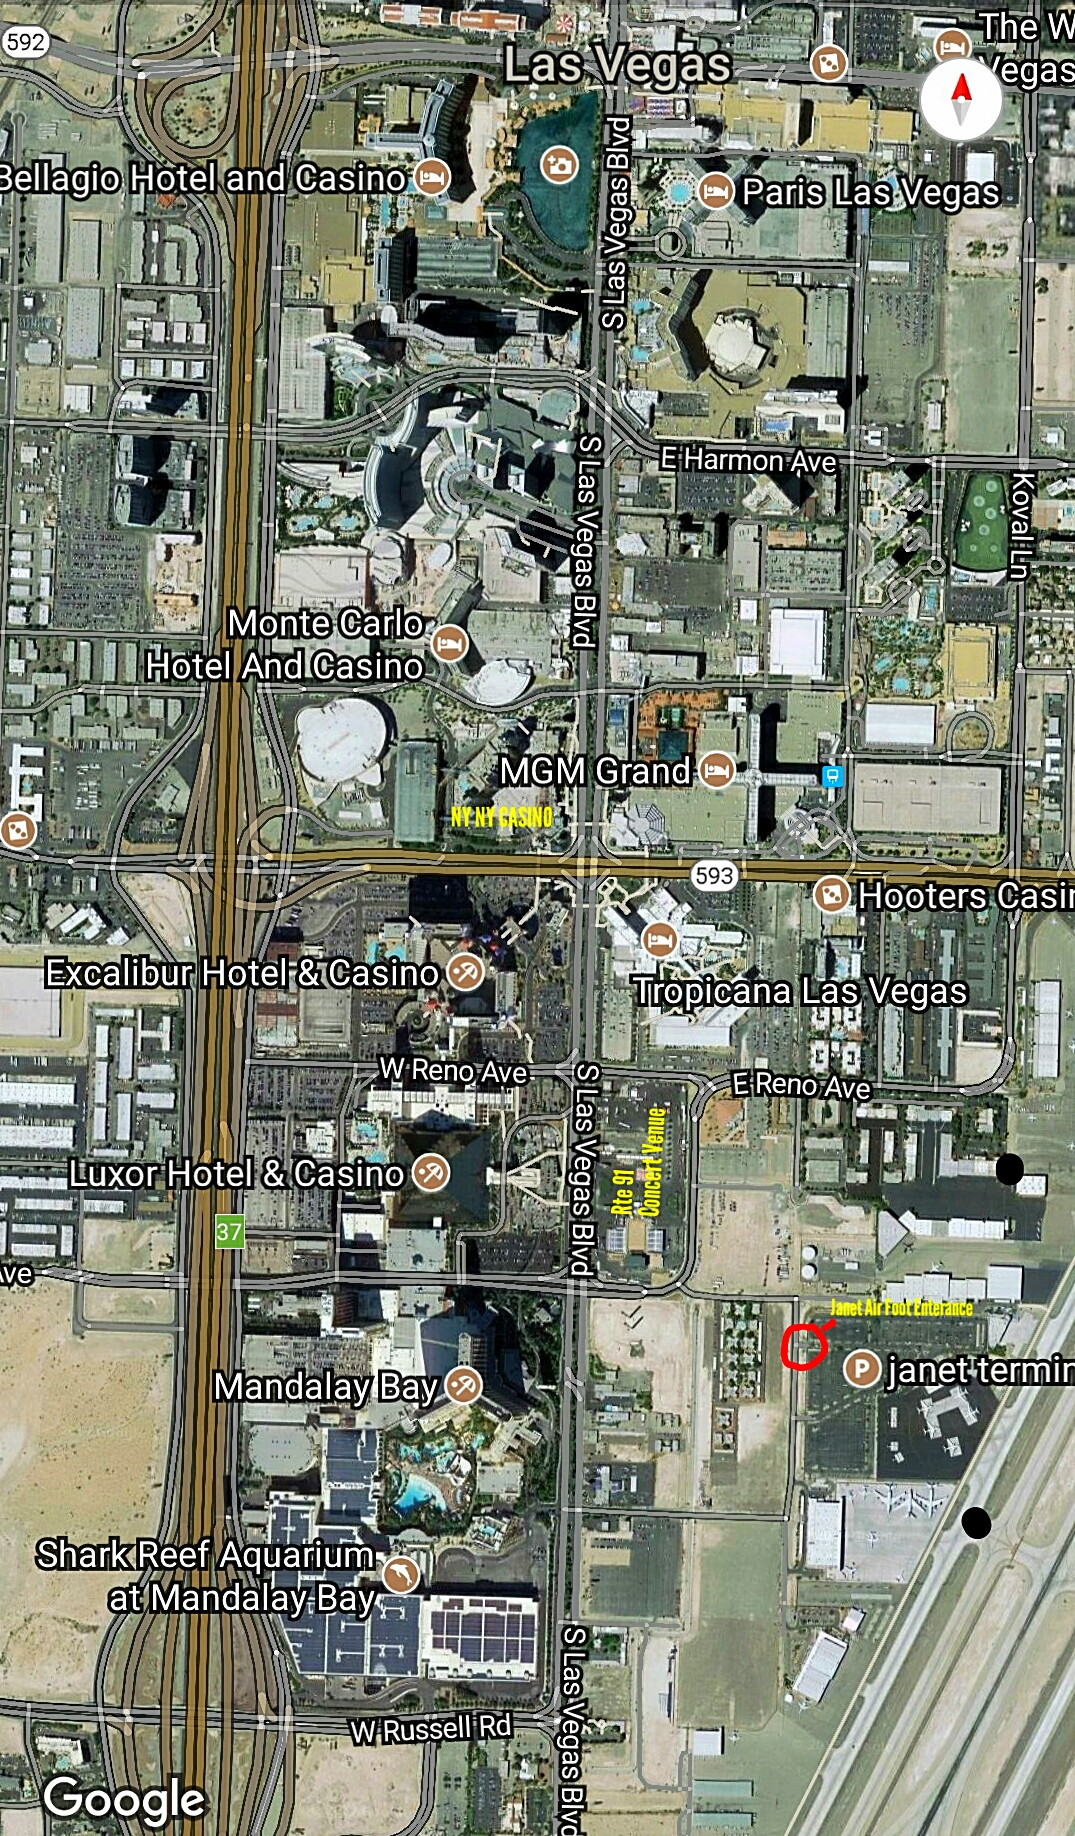 Aerial Photo Maps Of Las Vegas Massacre Site And Hotels